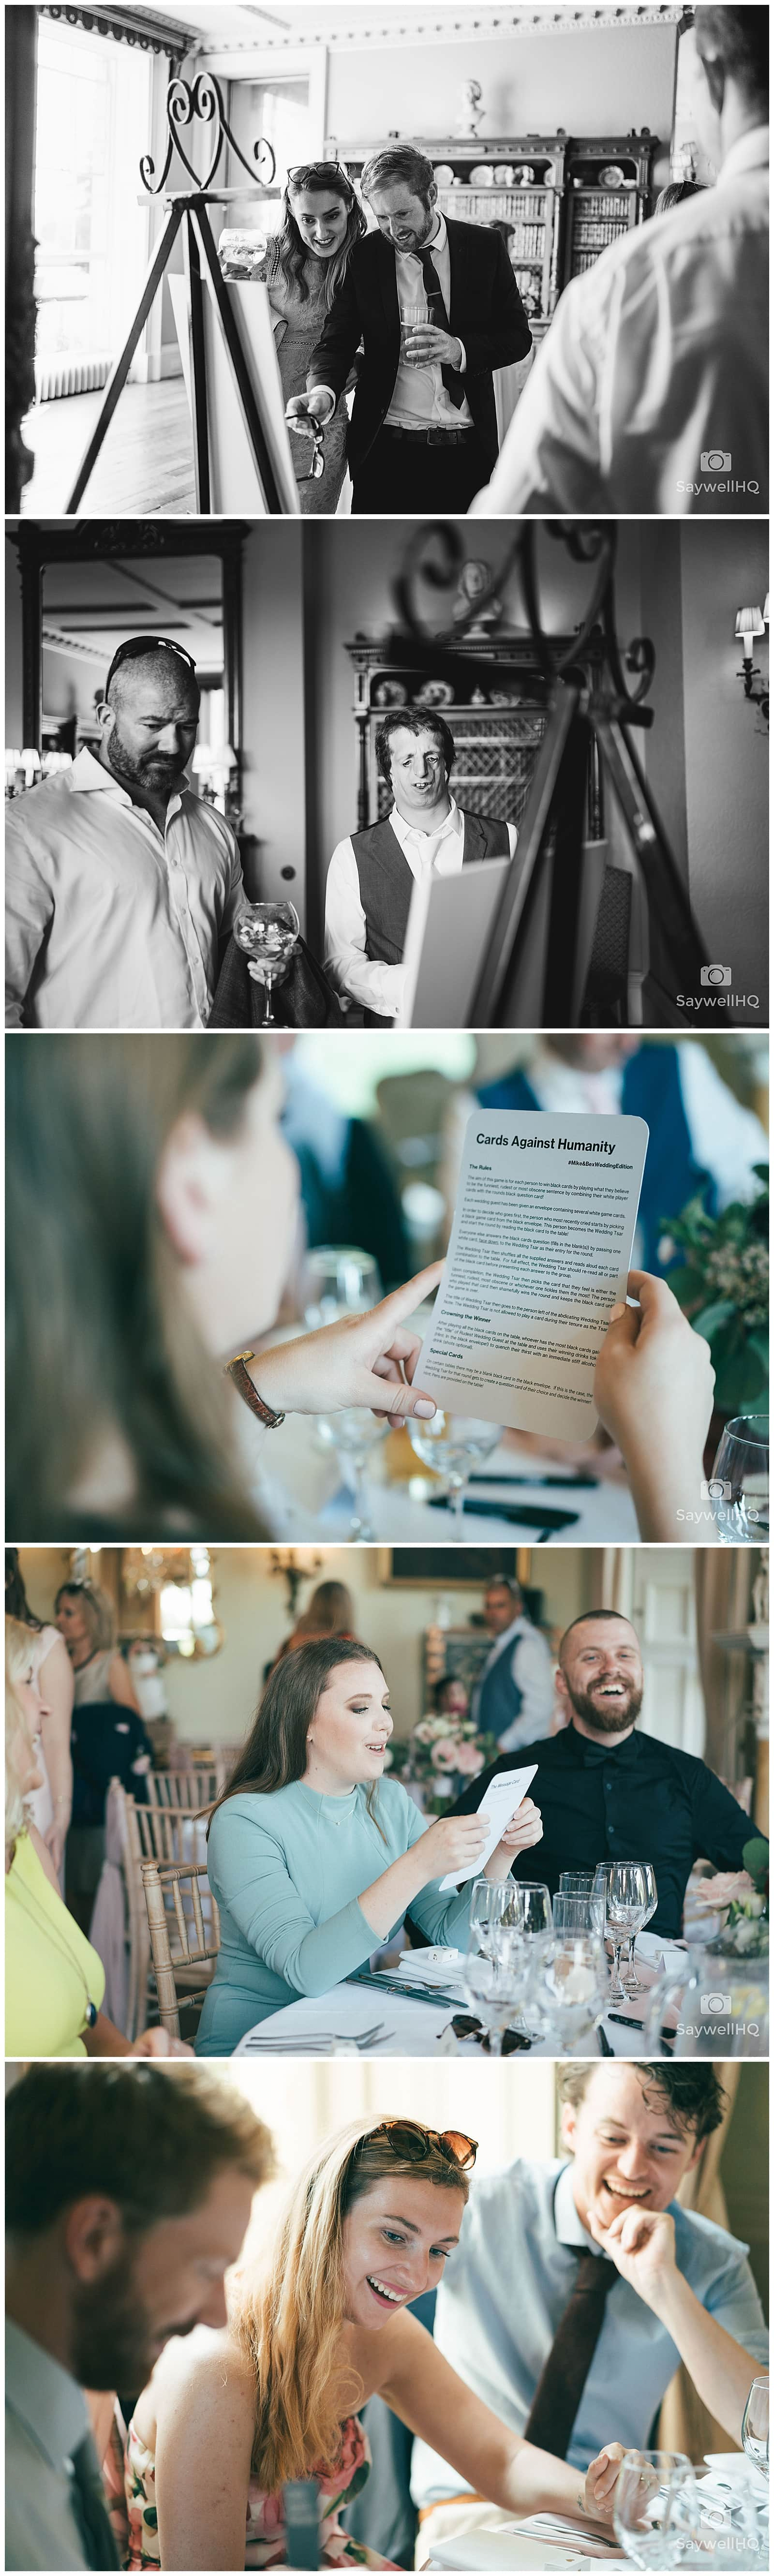 Wedding Photography at Prestwold Hall – guests welcome in the bride and groom to the wedding breakfast at Prestwold Hall